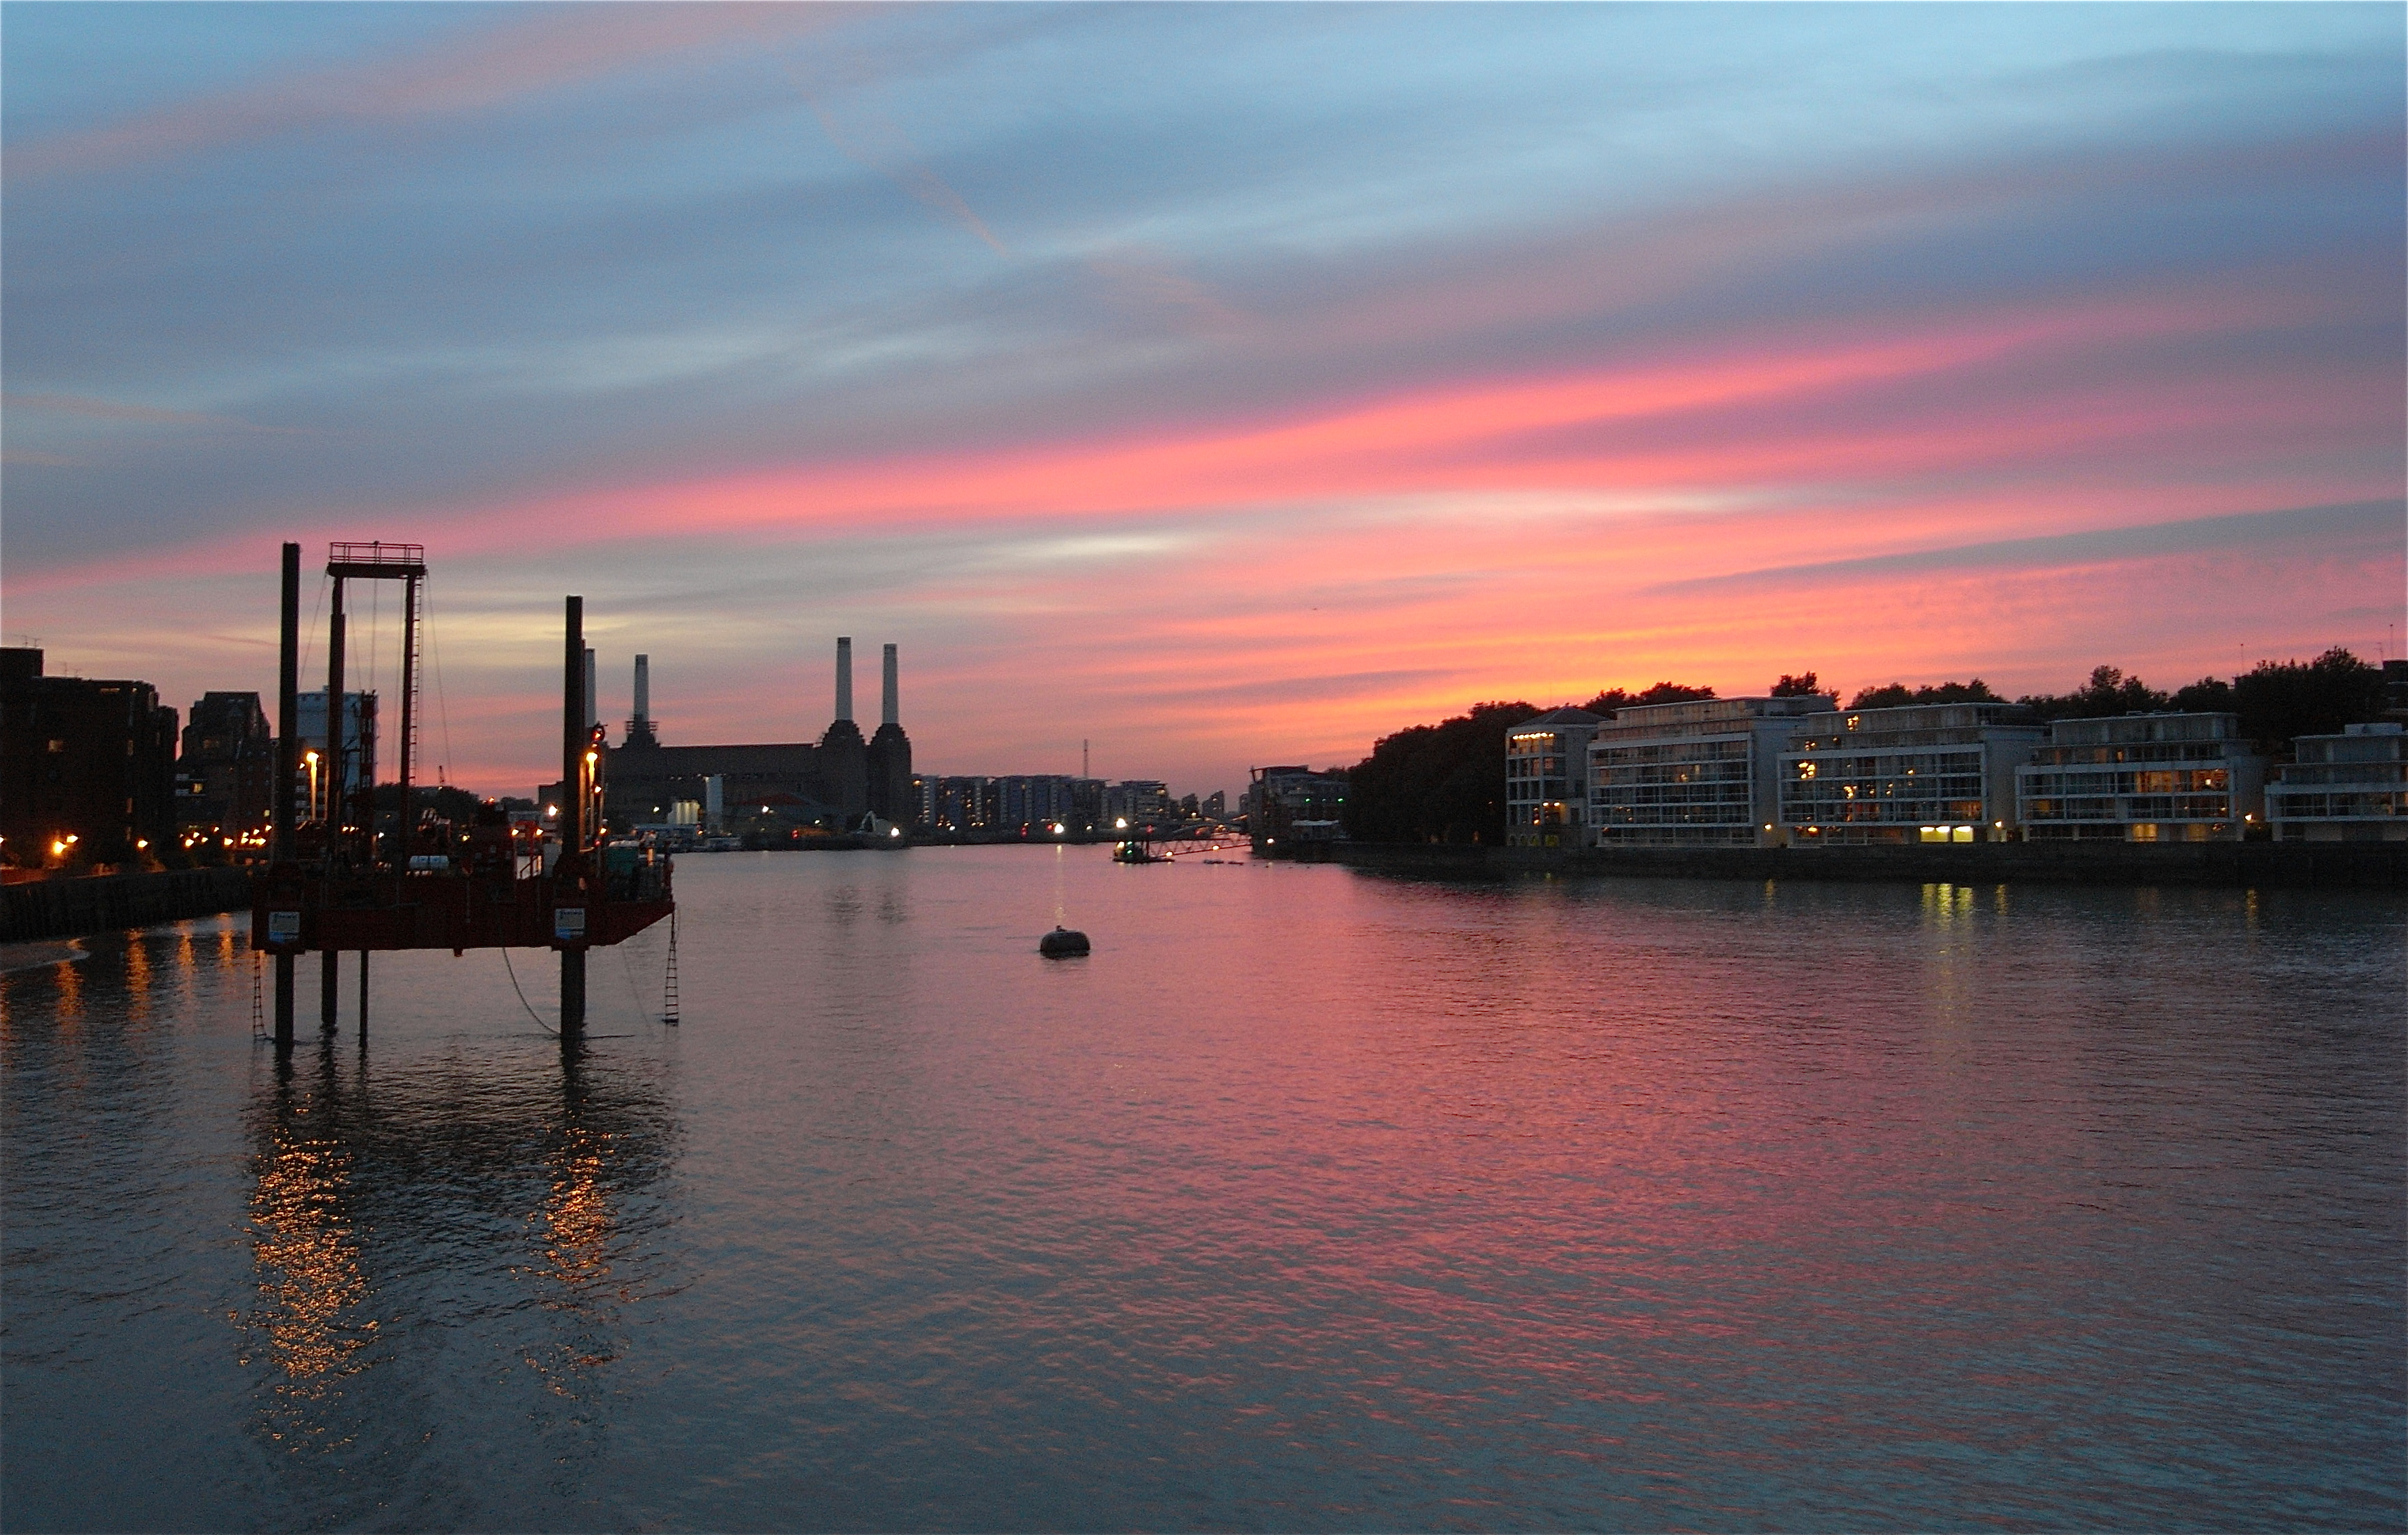 Two-thirds of London's drinking water comes from the Thames. Delicious.